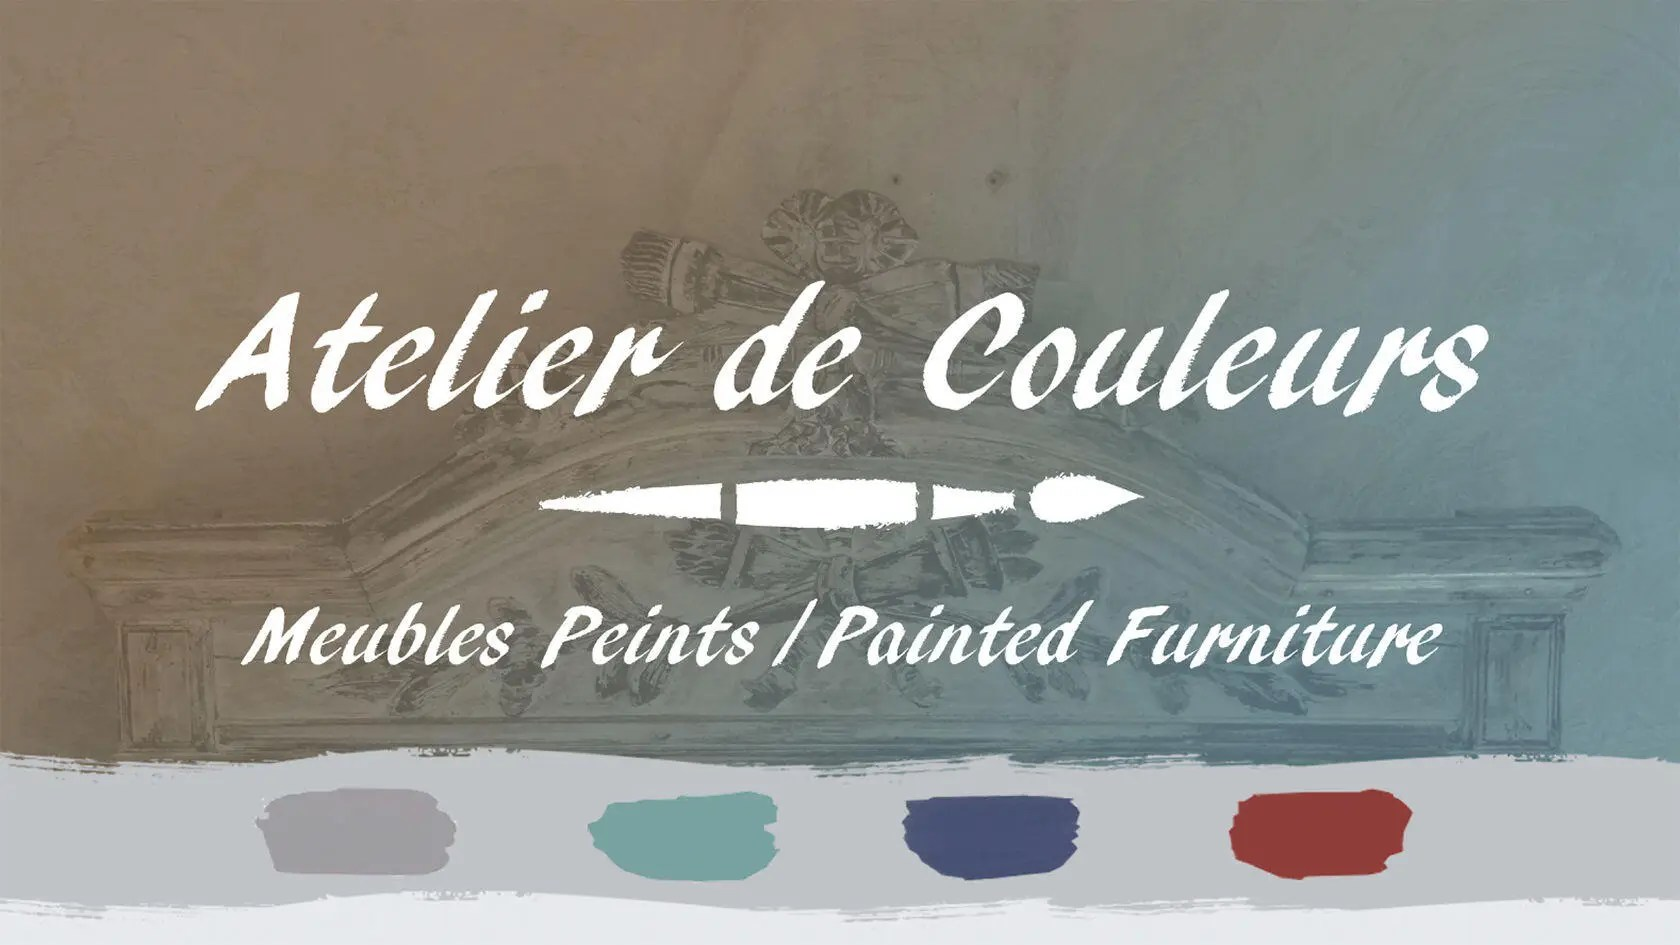 Atelier De Couleurs Workshop In Menerbes Where Period Furniture Gets A New Look Perfectly Provence